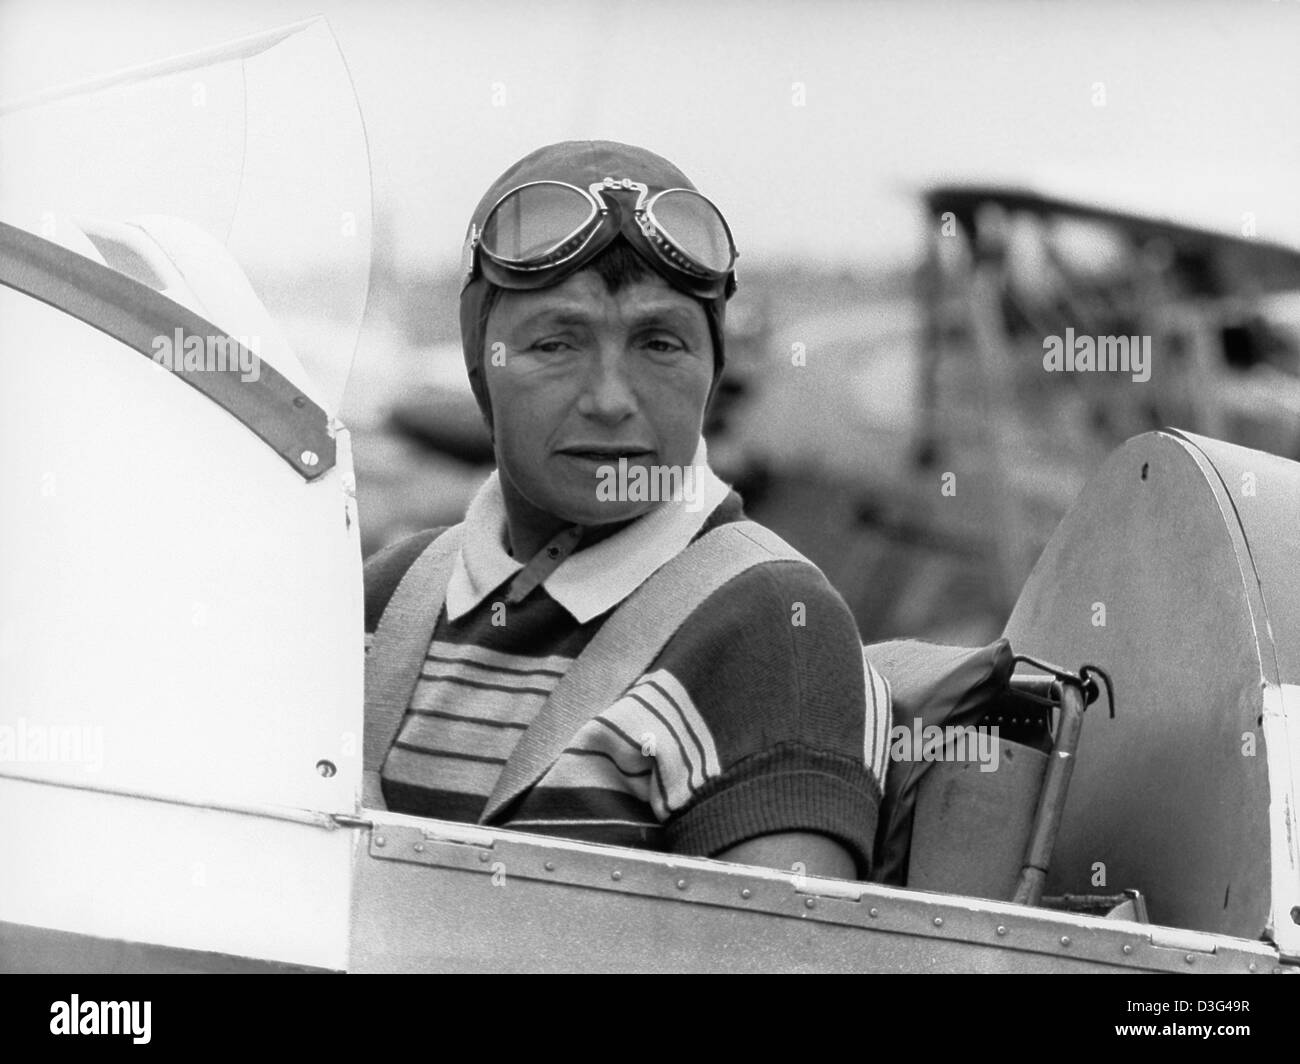 (dpa files) - The air acrobat Liesel Bach sits in her aircraft during the German acrobatic flying competition in - Stock Image